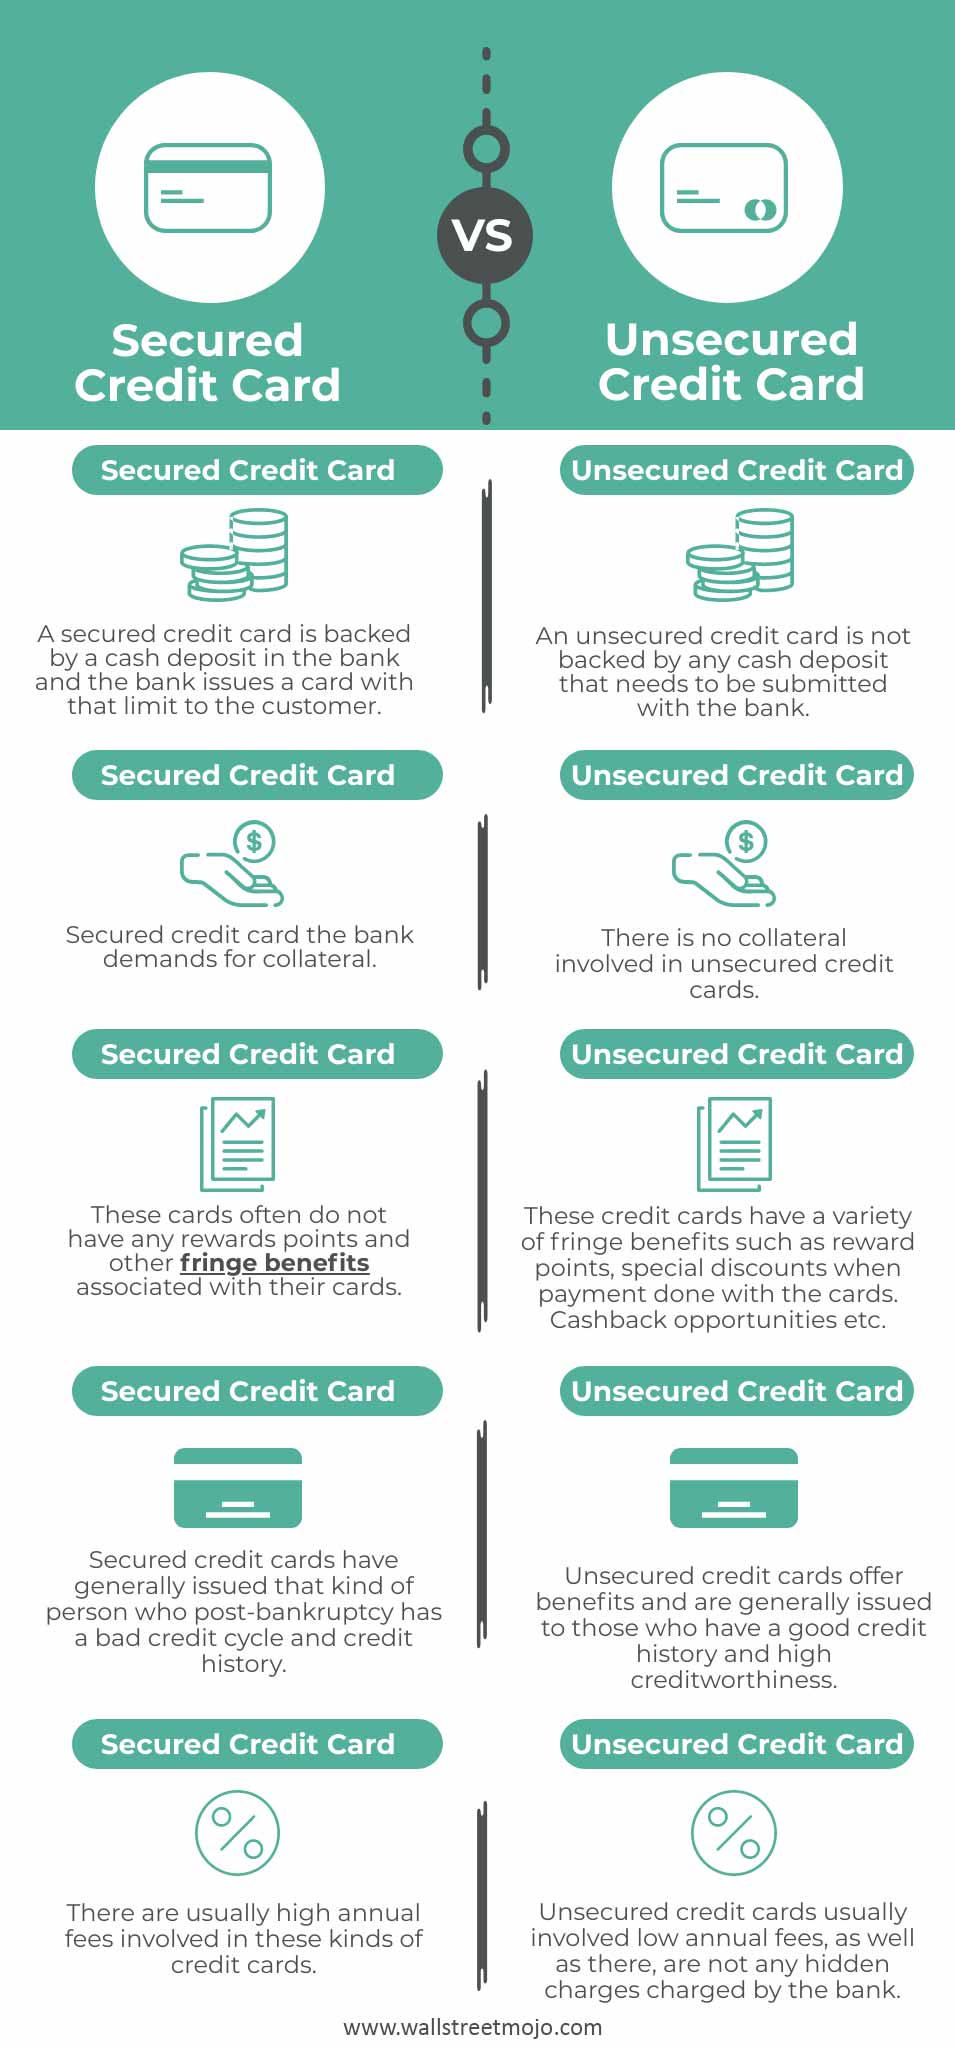 Secured-Credit-Card-vs-Unsecured-Credit-Card-info